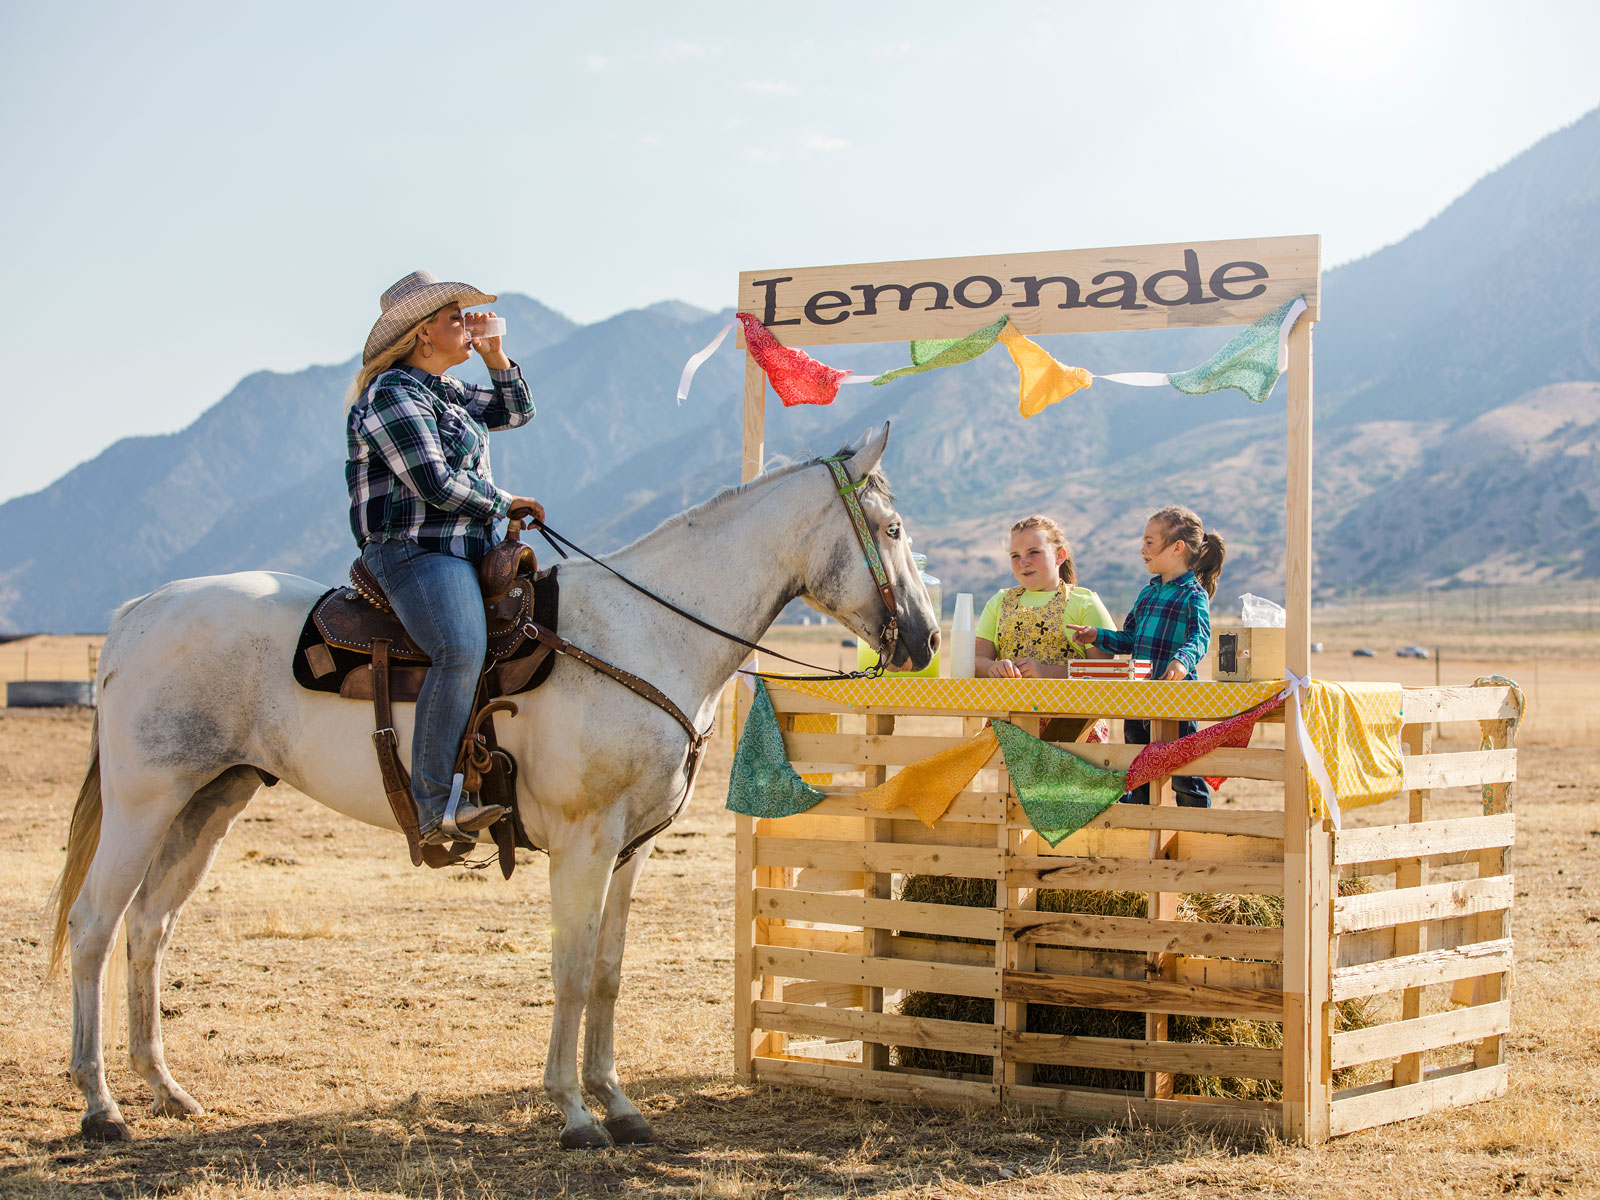 A woman on a horse in front of a lemonade stand with mountains in background